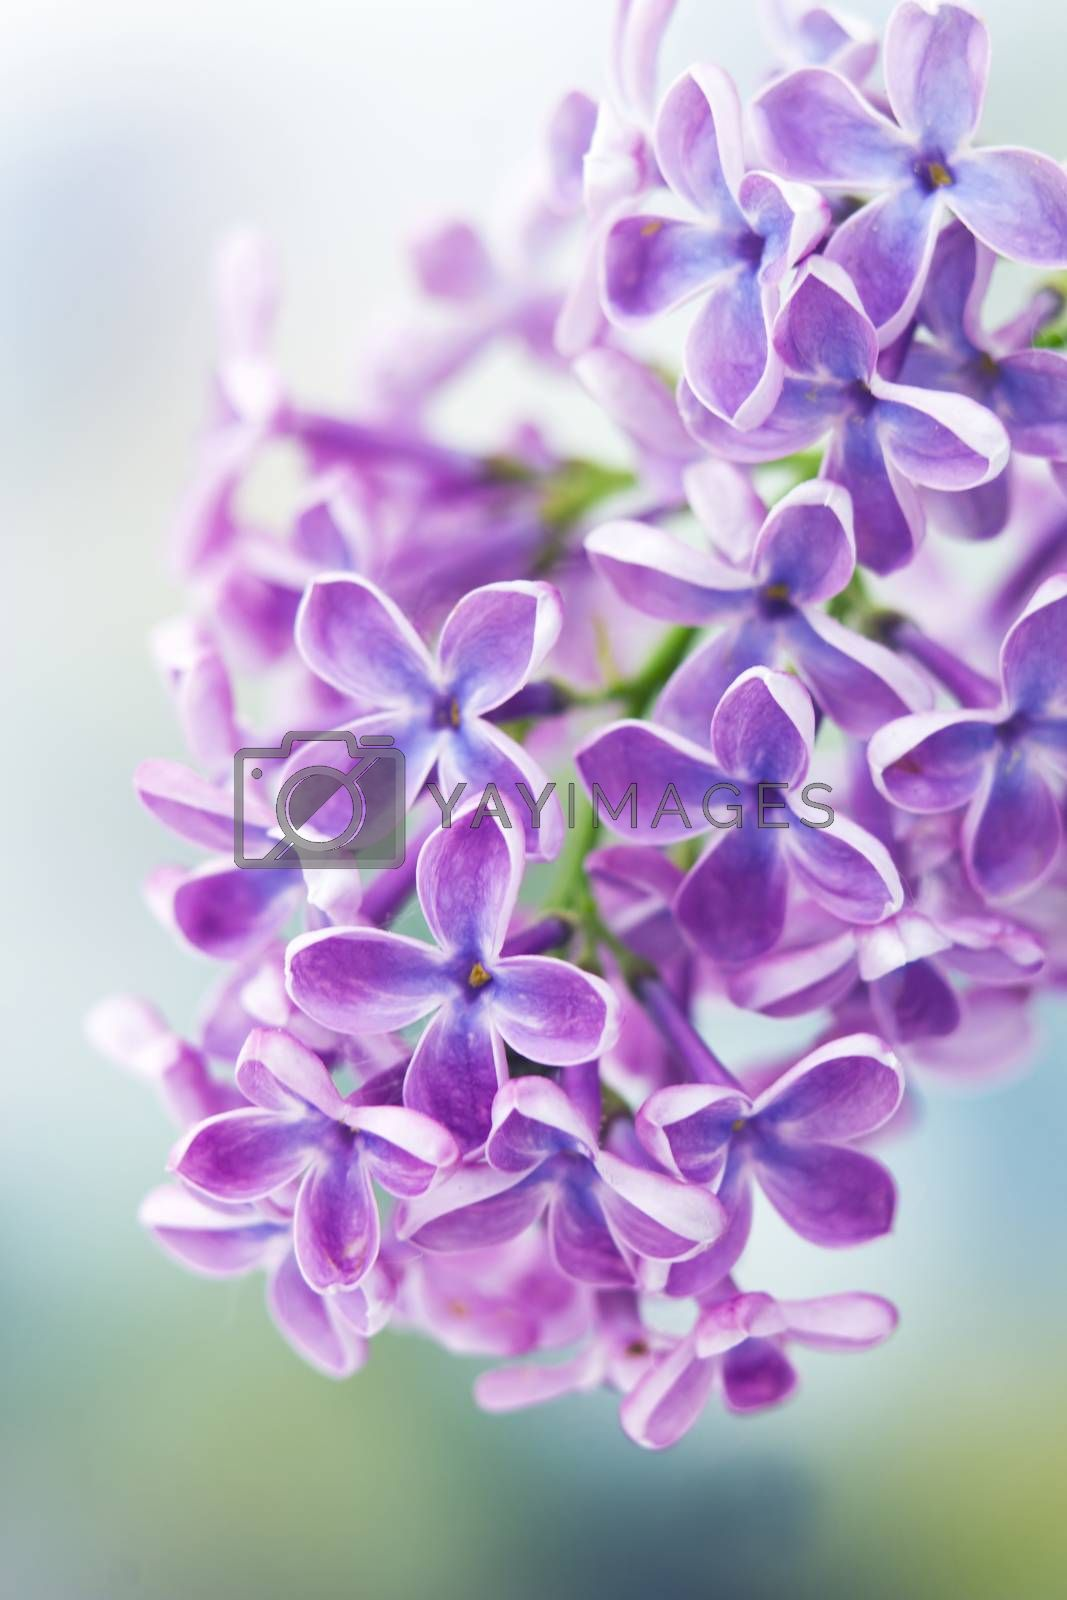 Royalty free image of Blooming lilac flowers by miradrozdowski